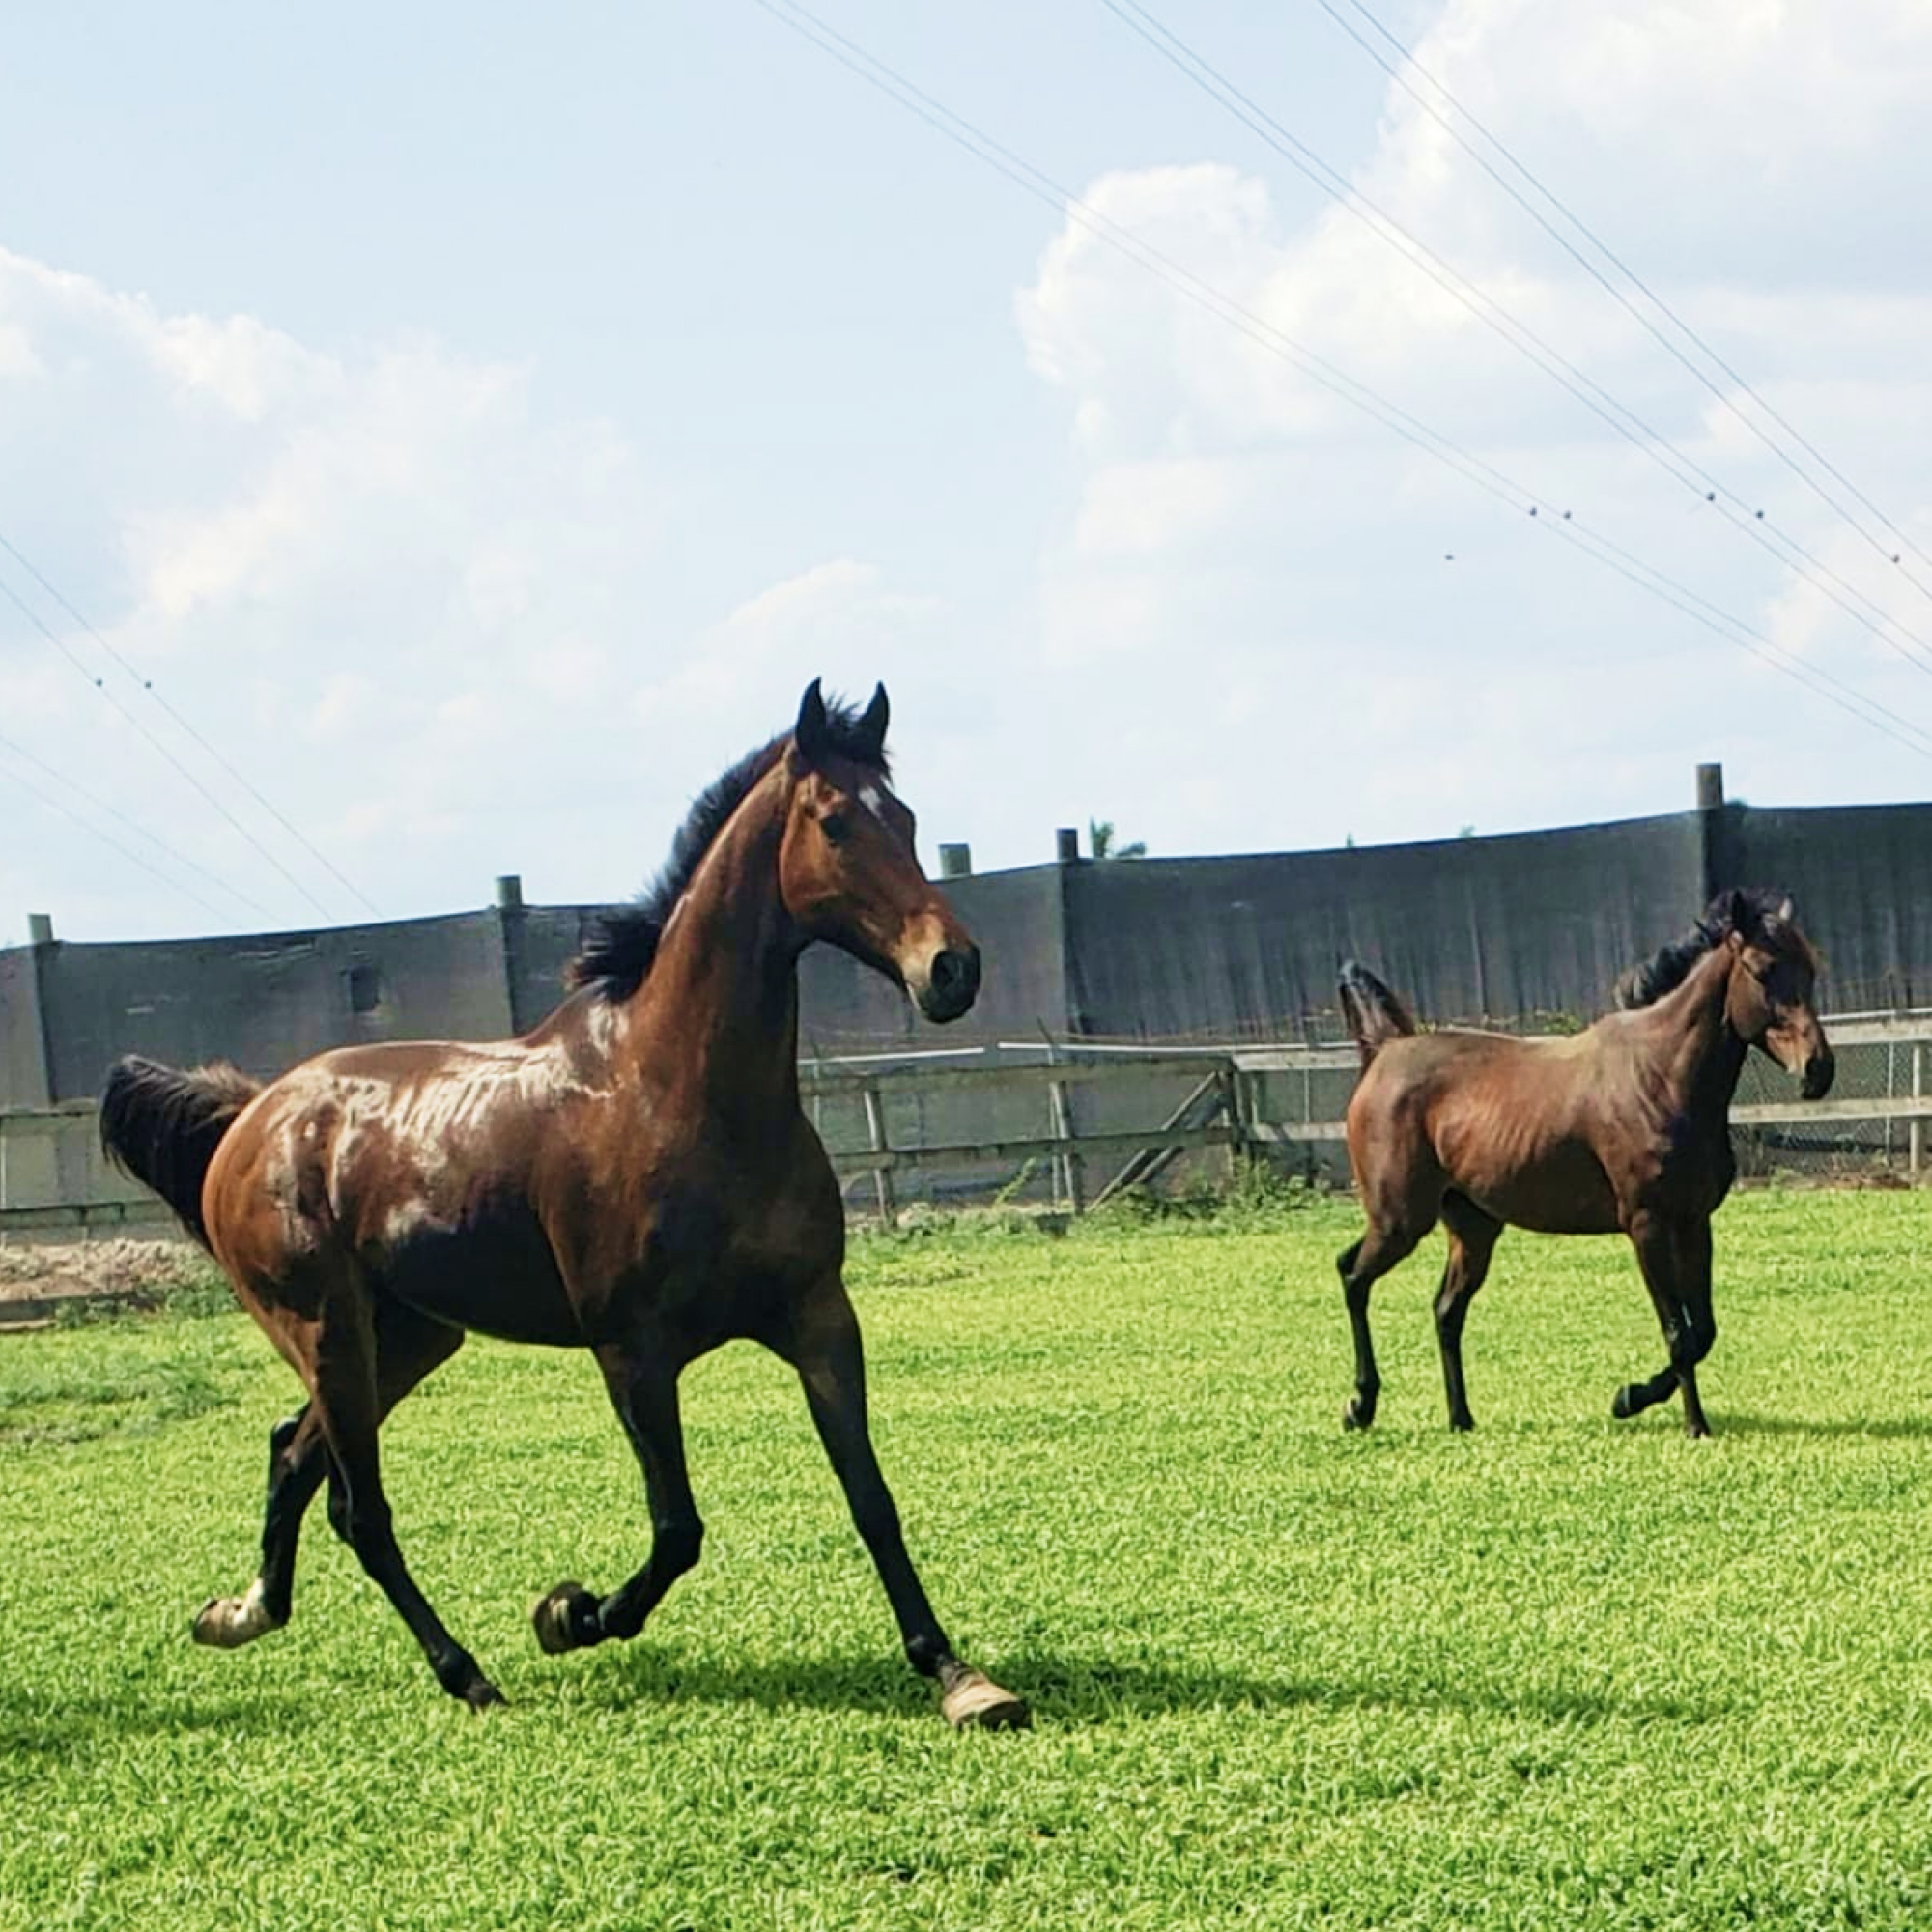 Horses galloping free at the South Florida Society for the Prevention of Cruelty to Animals